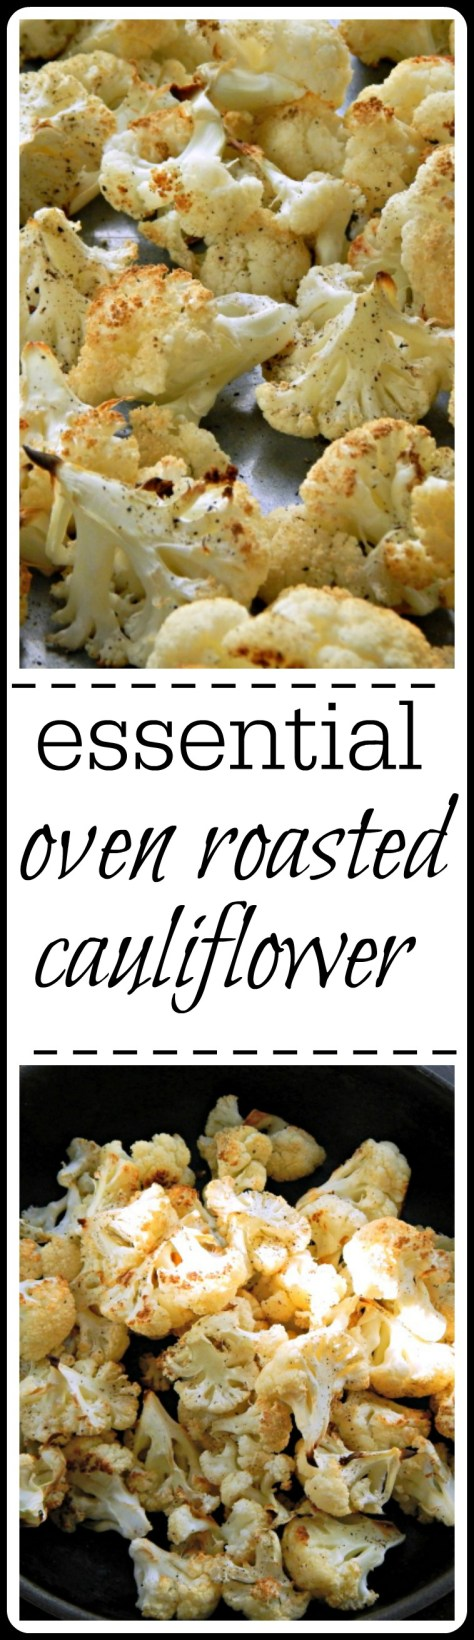 This is the recipe you want for roasted cauliflower! So simple, so good.